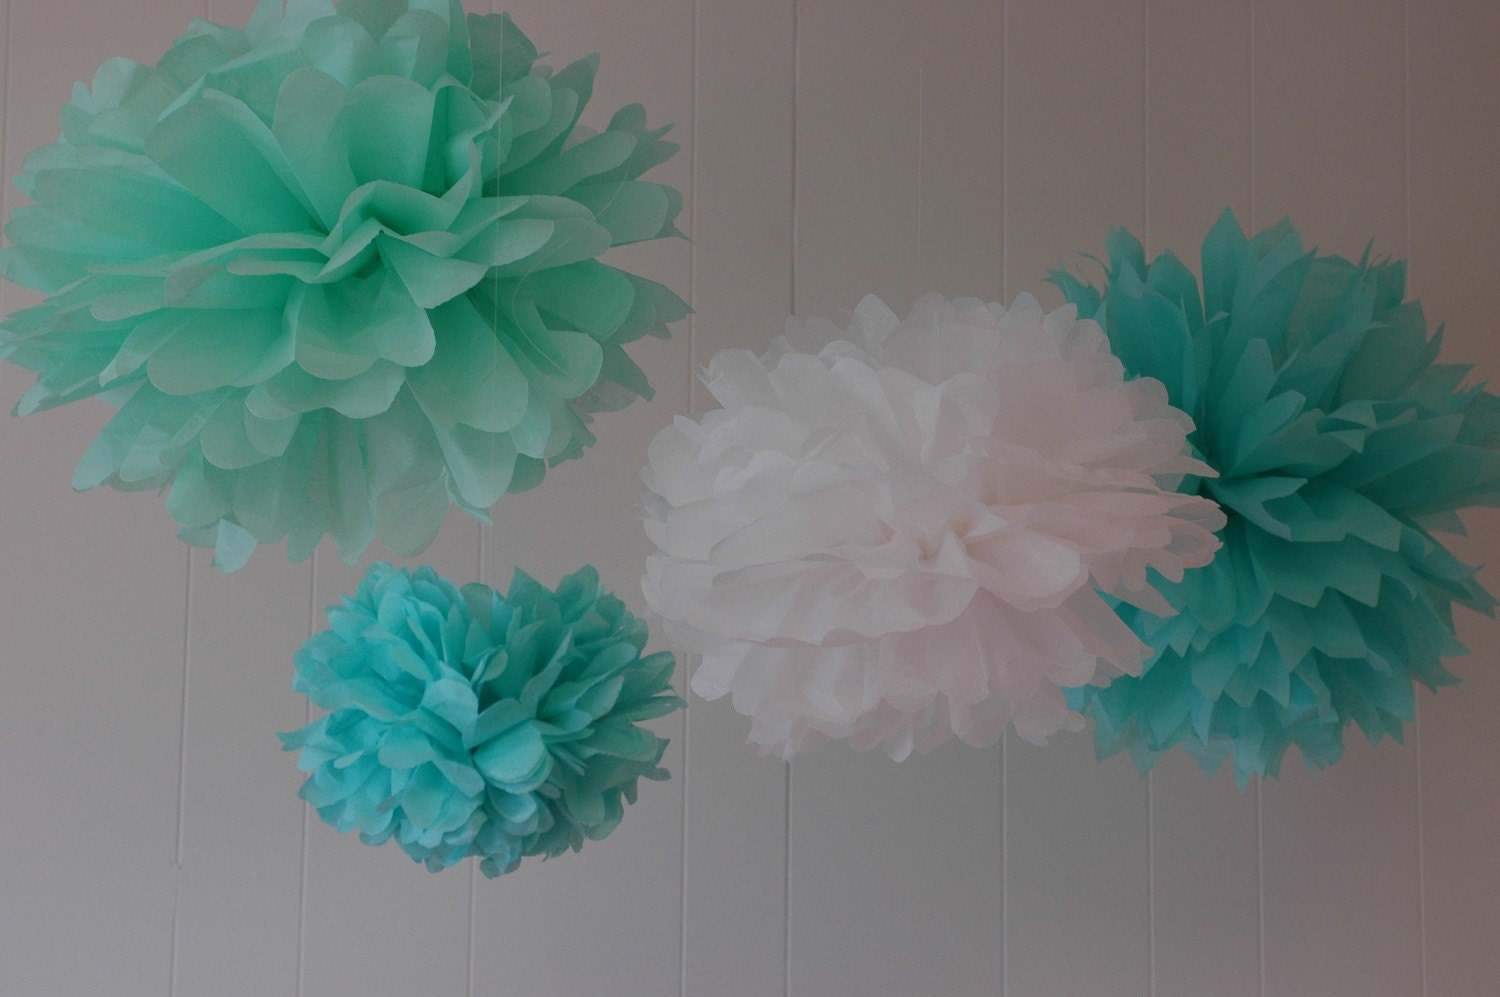 Tiffany Collection 5 Pom Poms Craft Show Booth Decorations